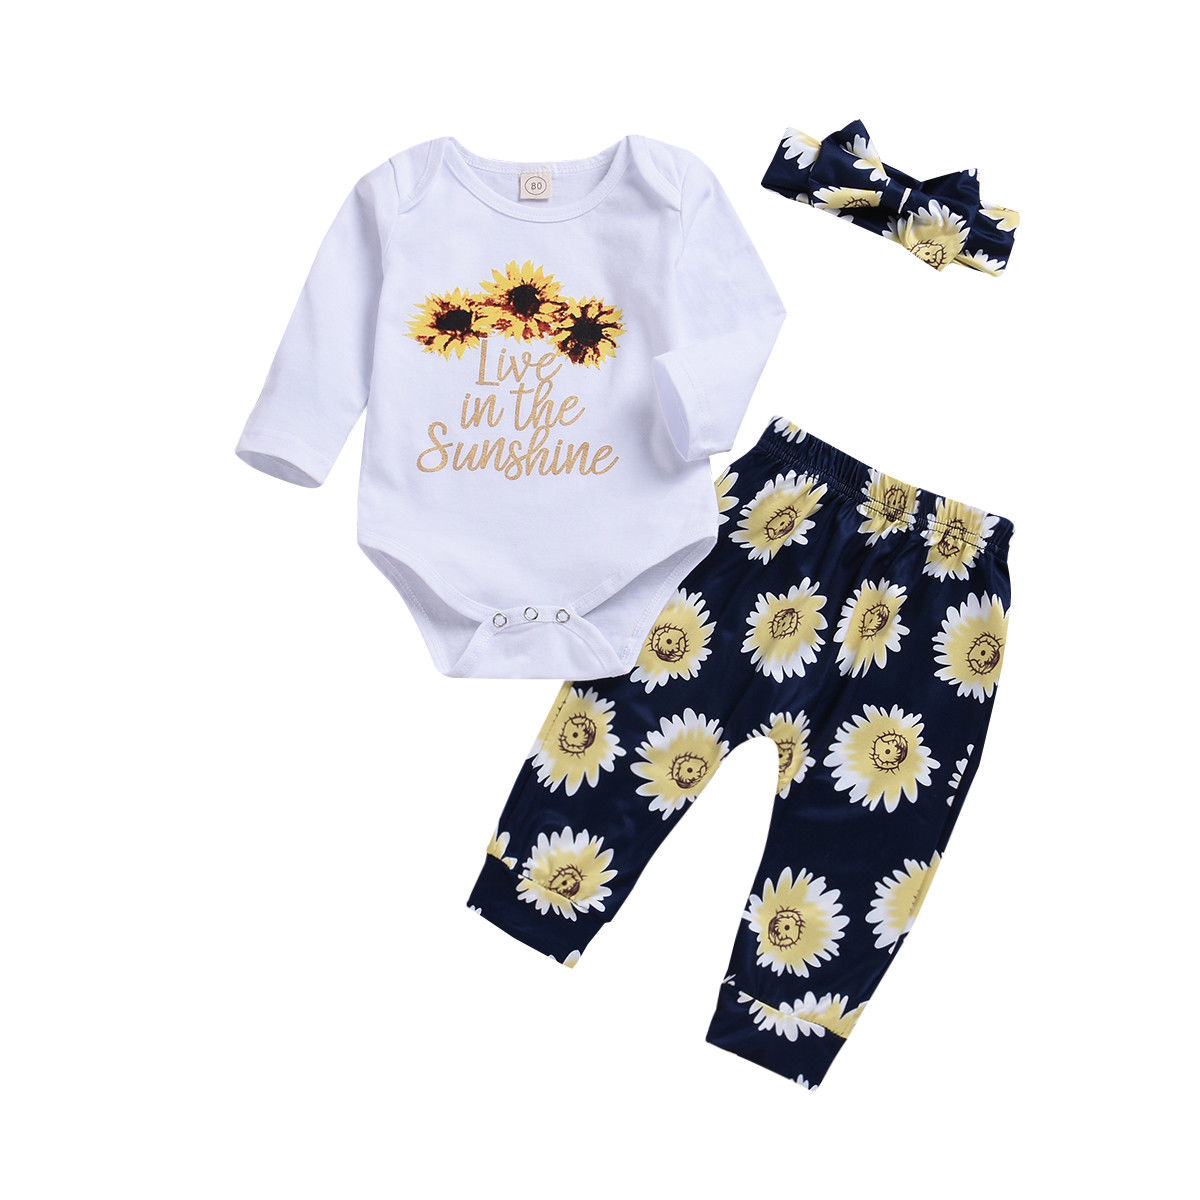 0-2T Toddler Newborn Infant Baby Girl Sunflower Outfits Cotton Flower Romper Tops+Pants Outfits Baby Girl Clothes Set DNOV newborn baby girls clothing 2018 toddler baby girl tops bodysuit romper flower pants bow headband 3pcs clothes outfits set